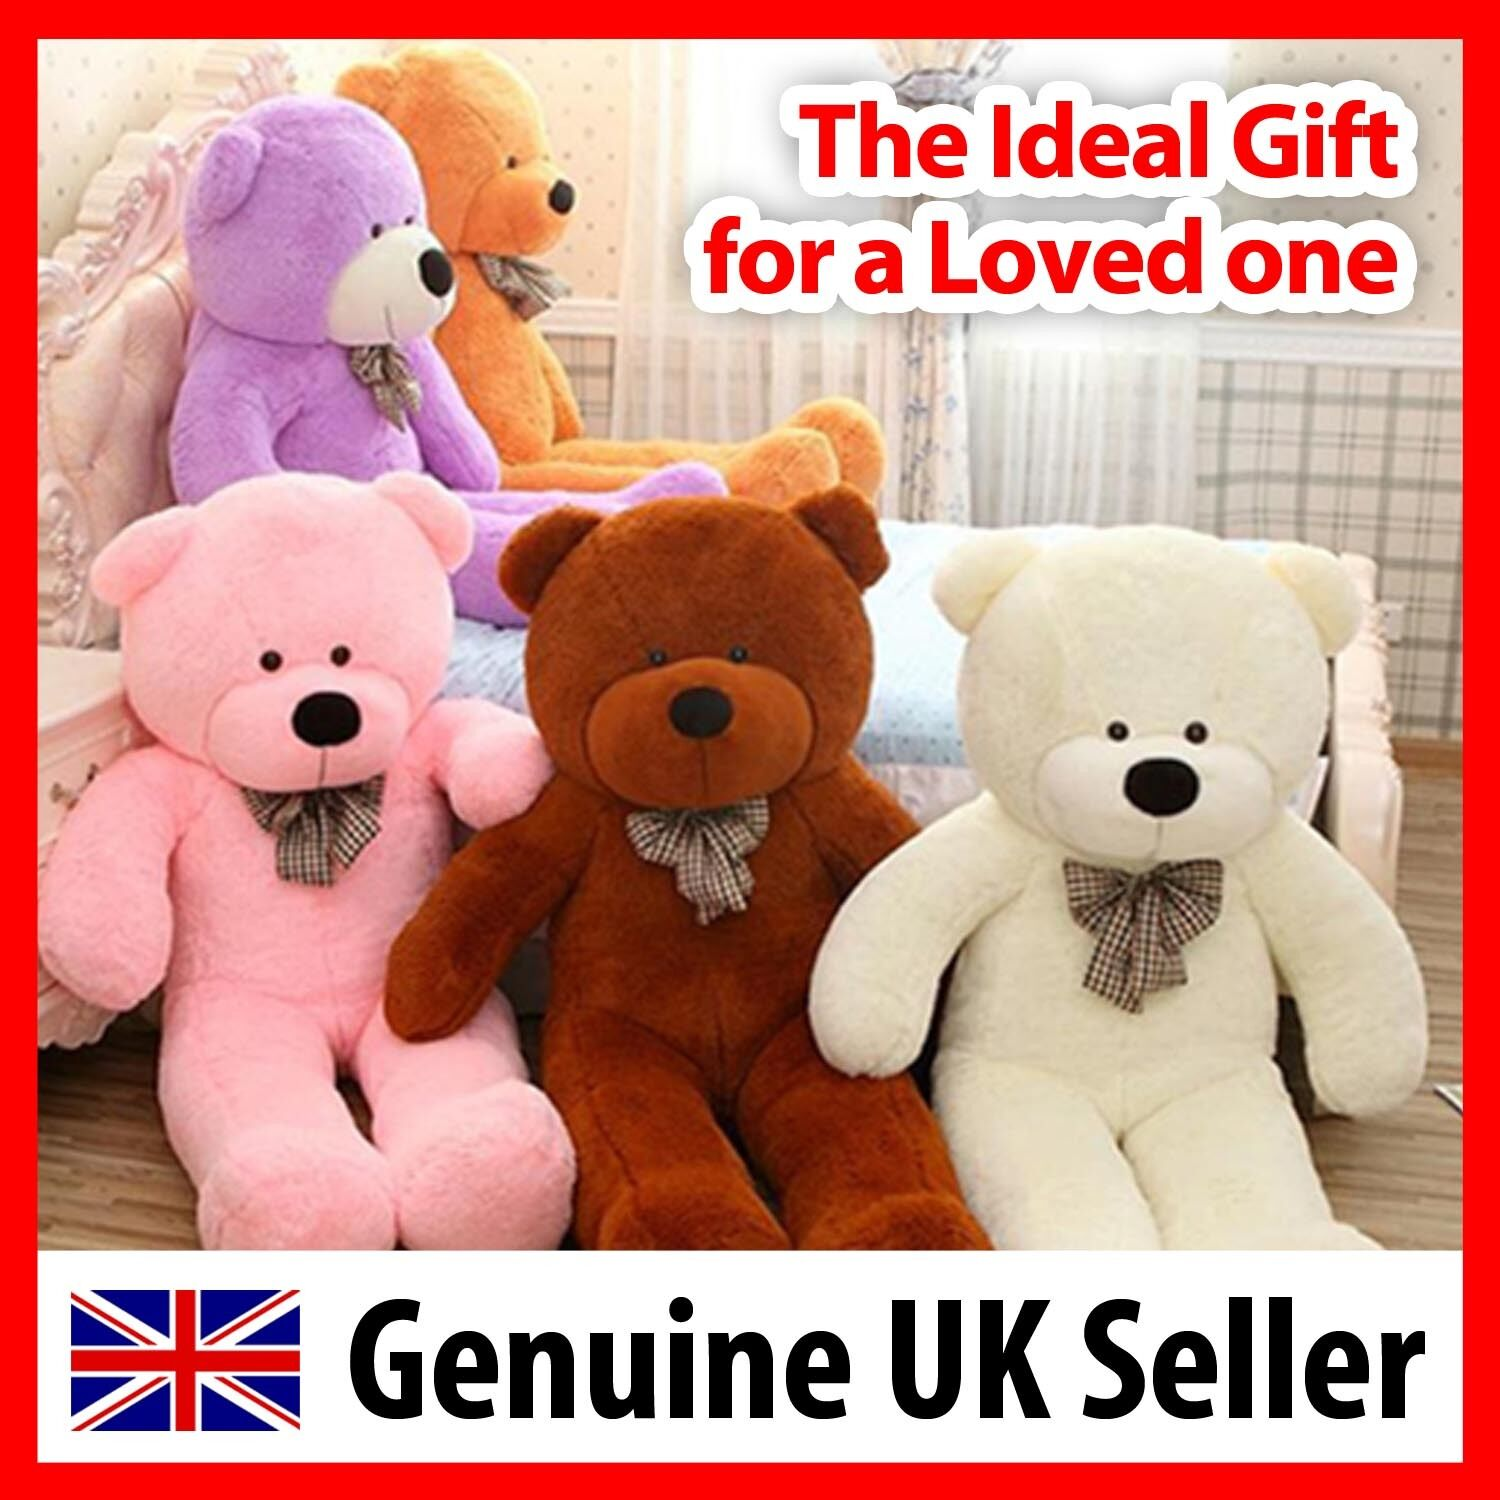 Christmas SALE Giant 6 foot teddy bear 180cm plush Present genuine UK Seller